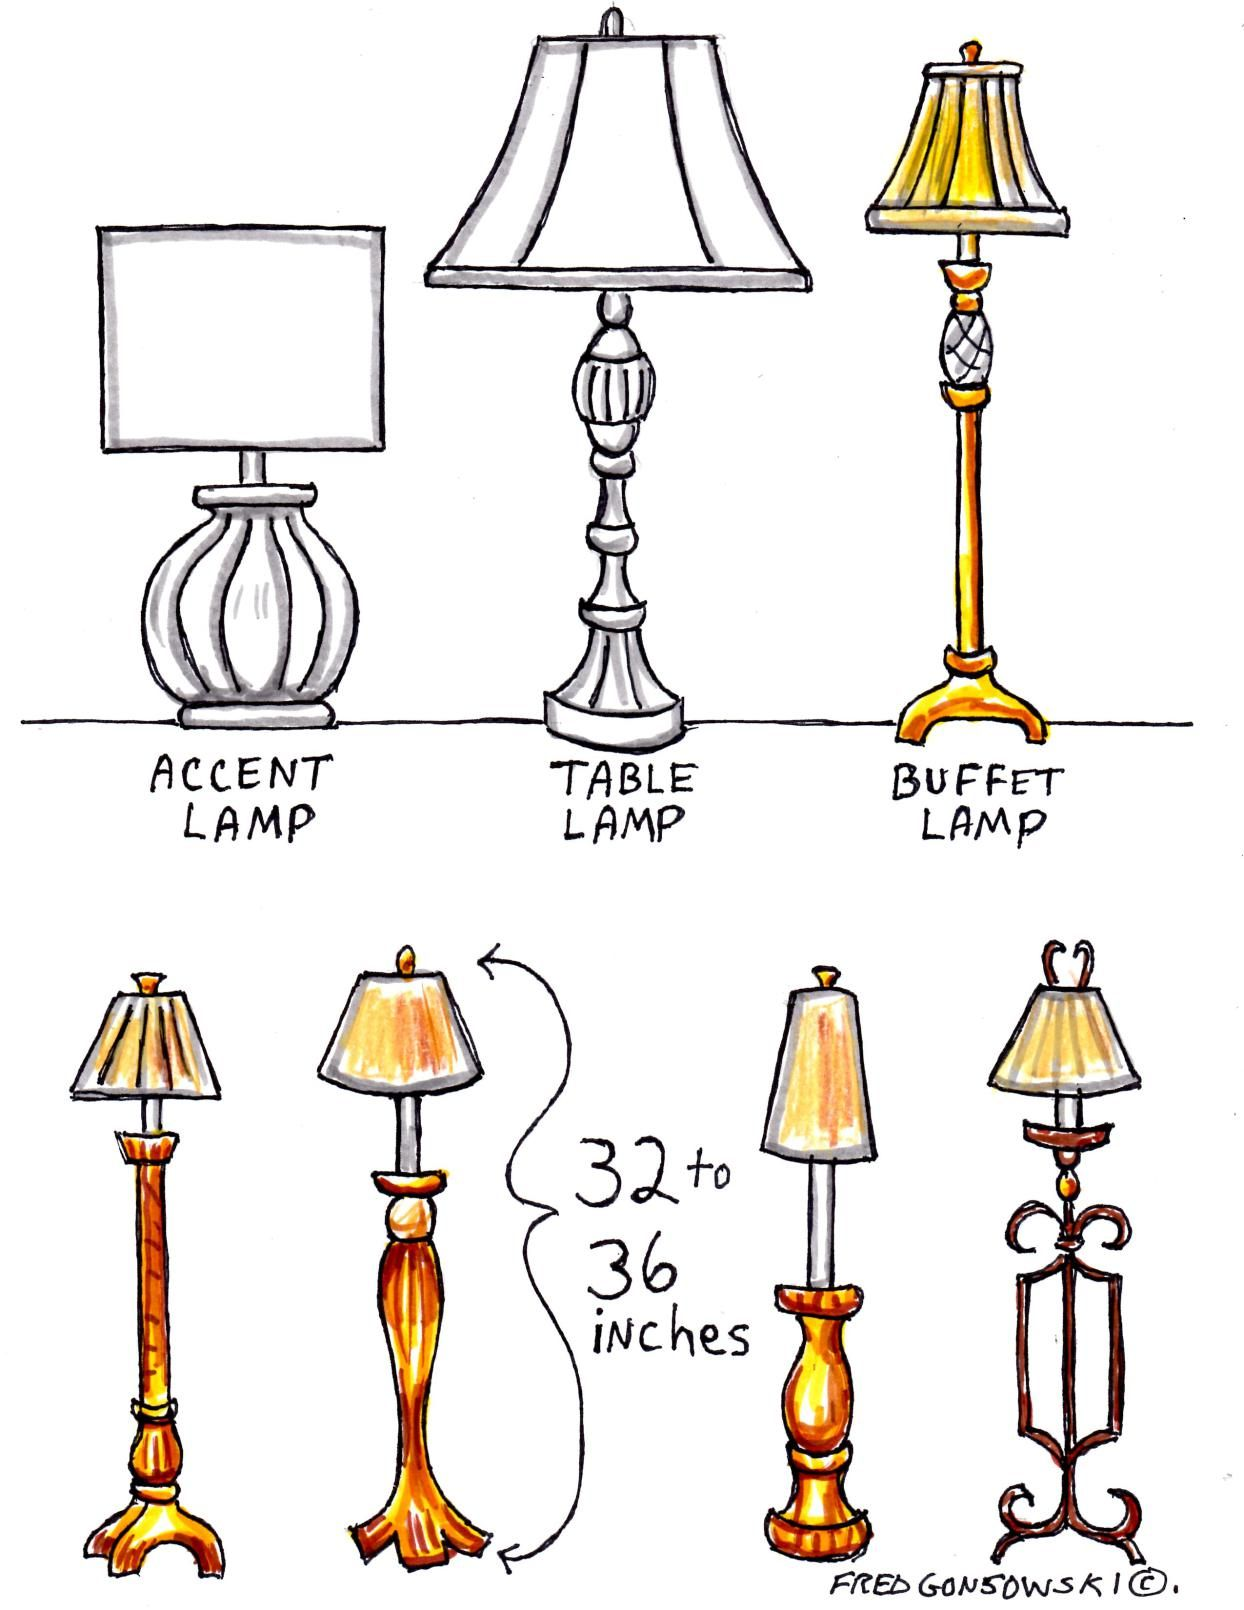 The Difference Between Accent Table And Buffet Lamps